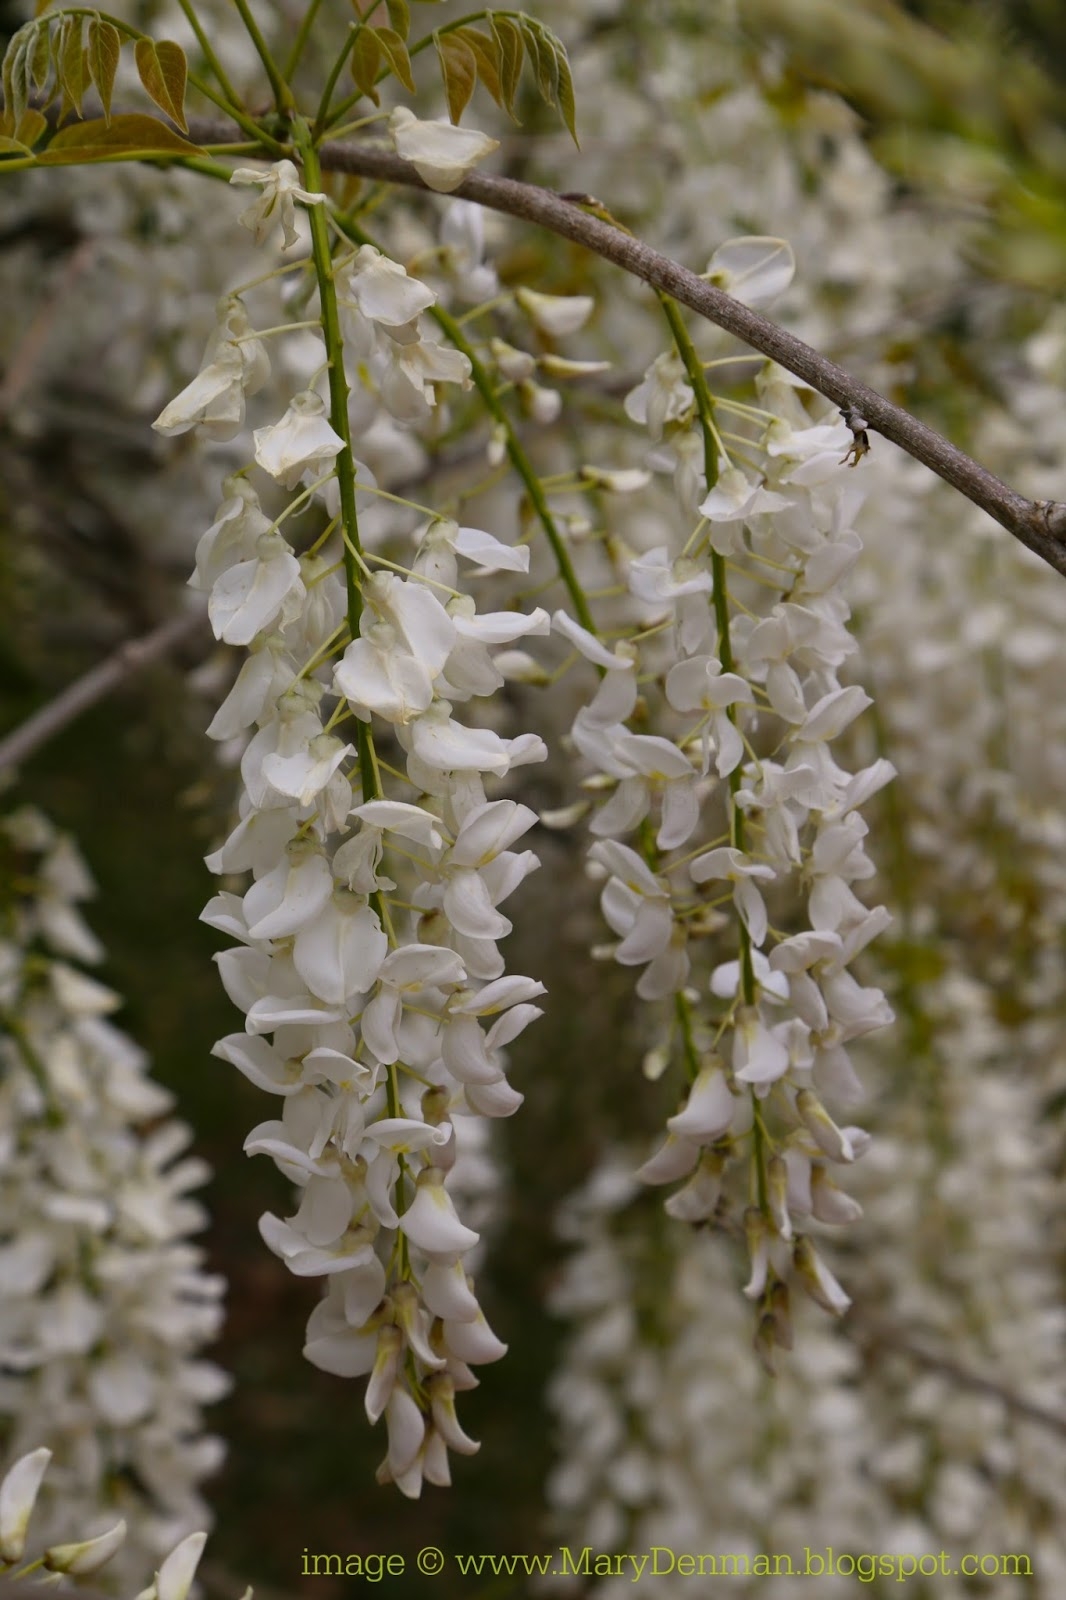 Steve White Vw >> Mary Denman: Wordless Wednesday: White Wisteria and our Puppy